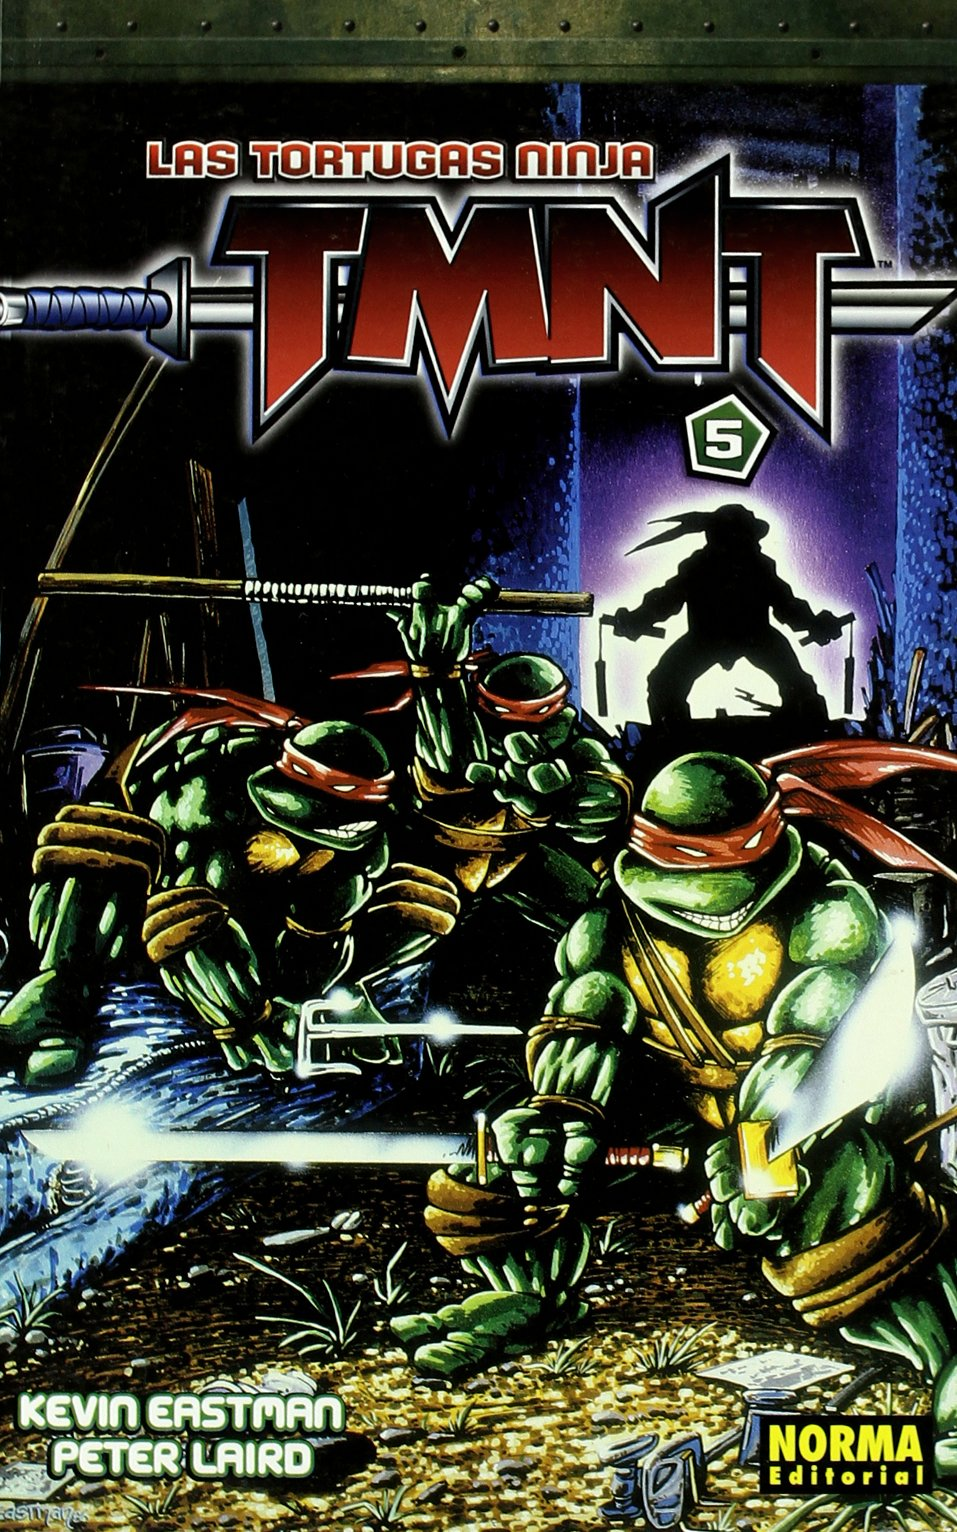 Las tortugas ninja TMNT 5/ Teenage Mutant Ninja Turtles 5 ...